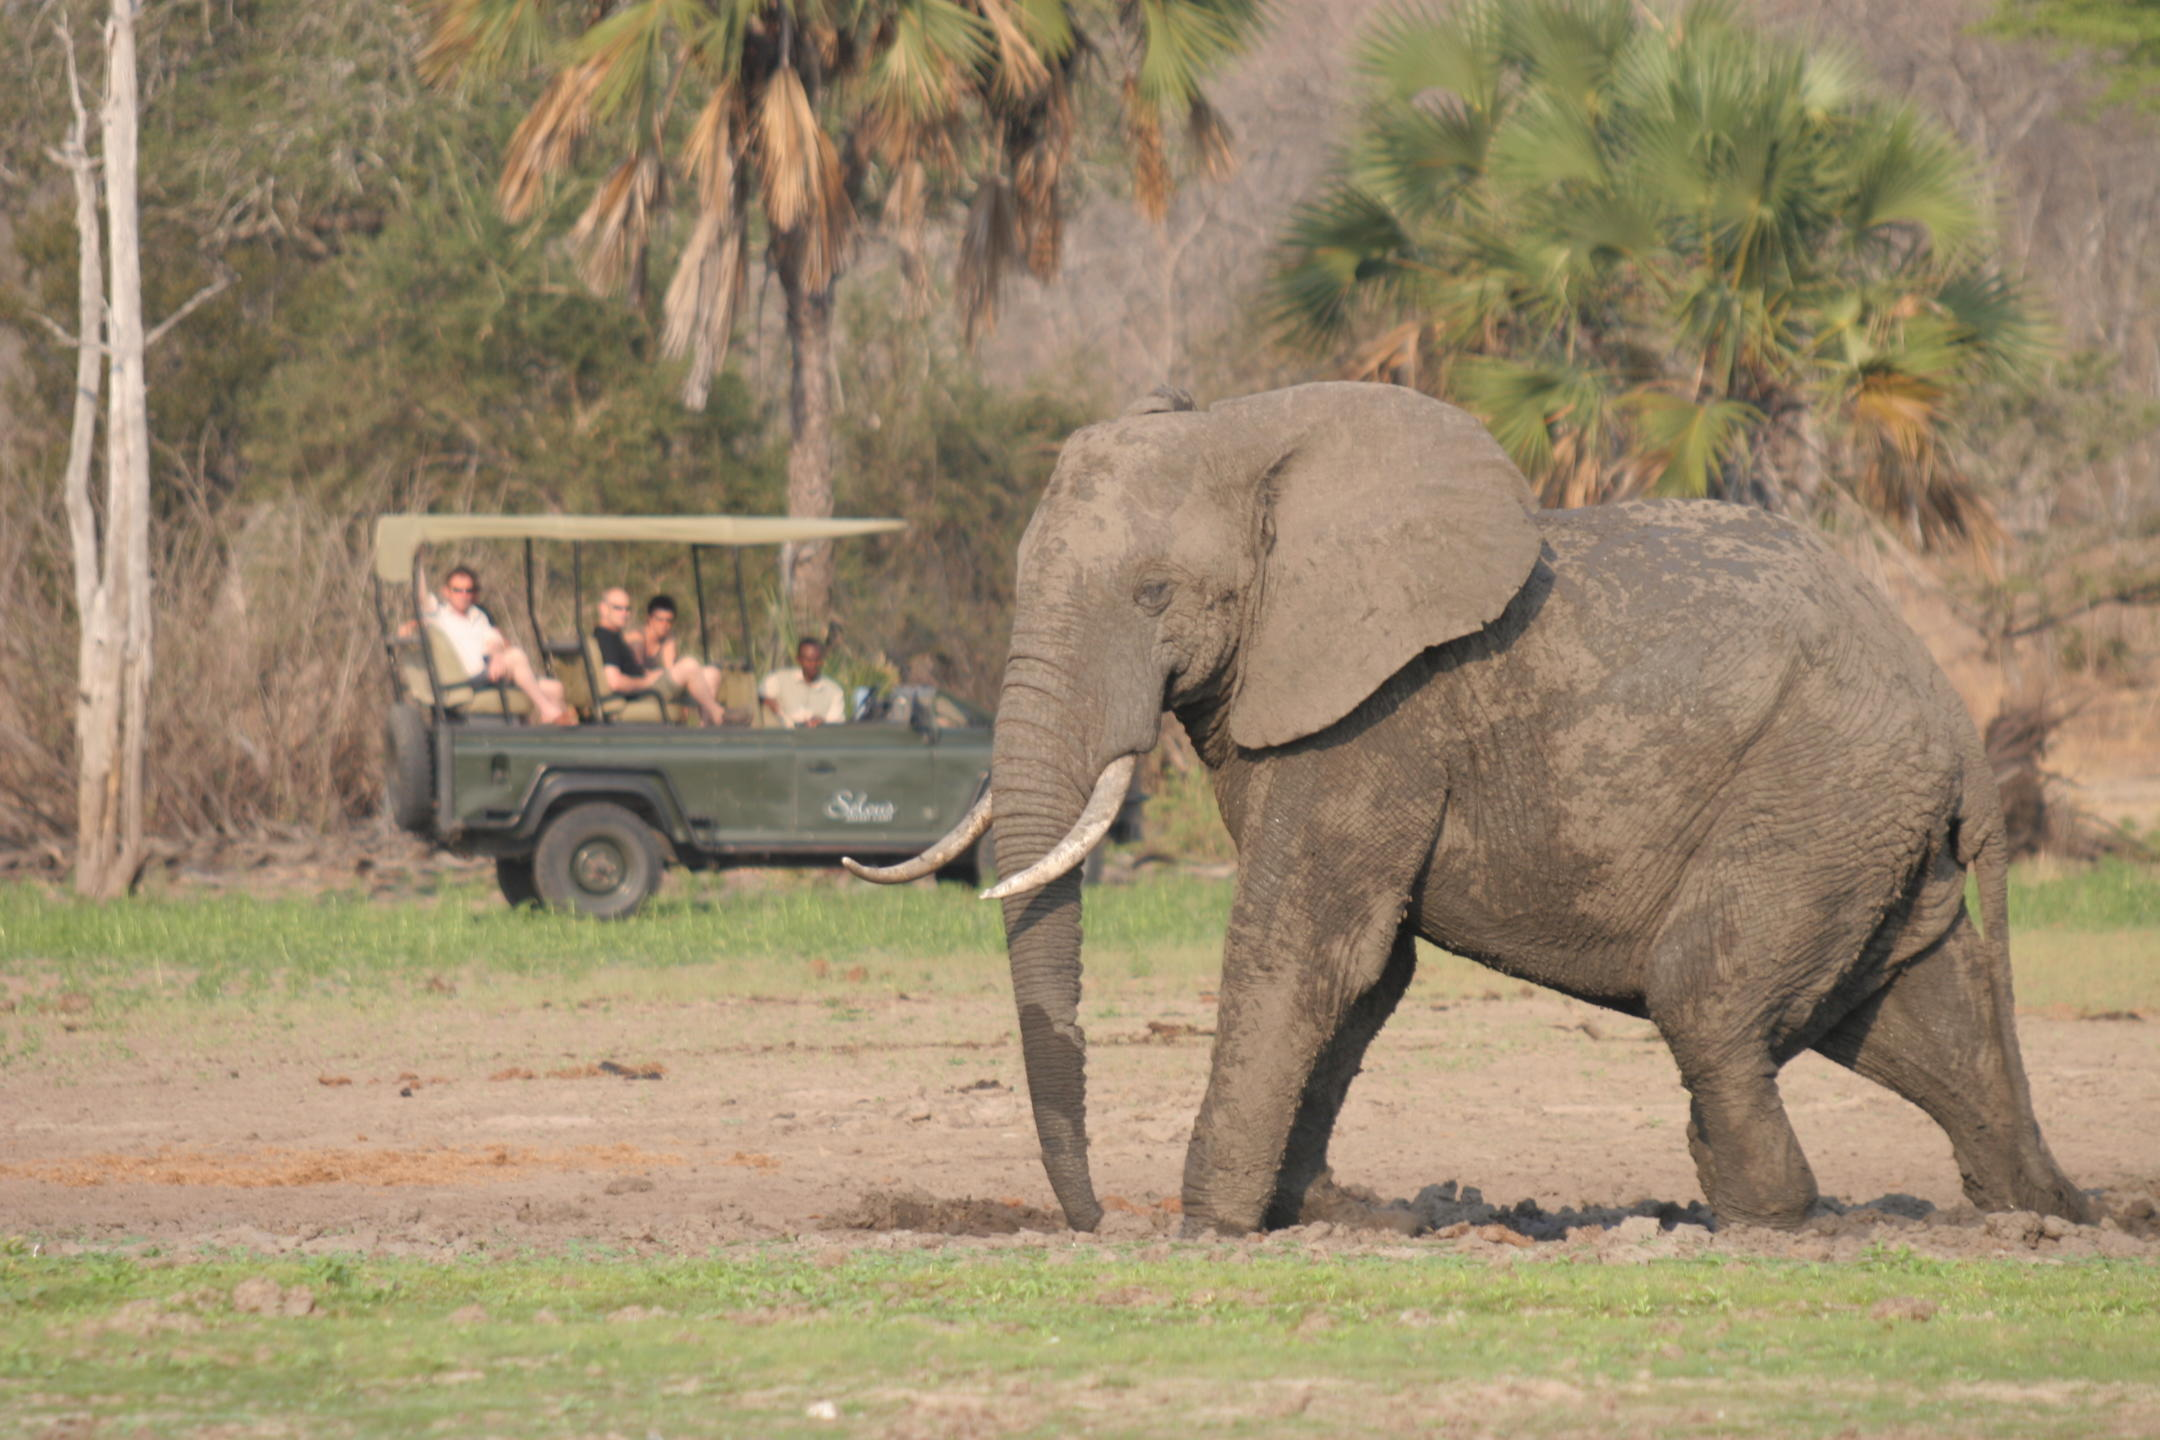 Prime wildlife area in Selous makes for